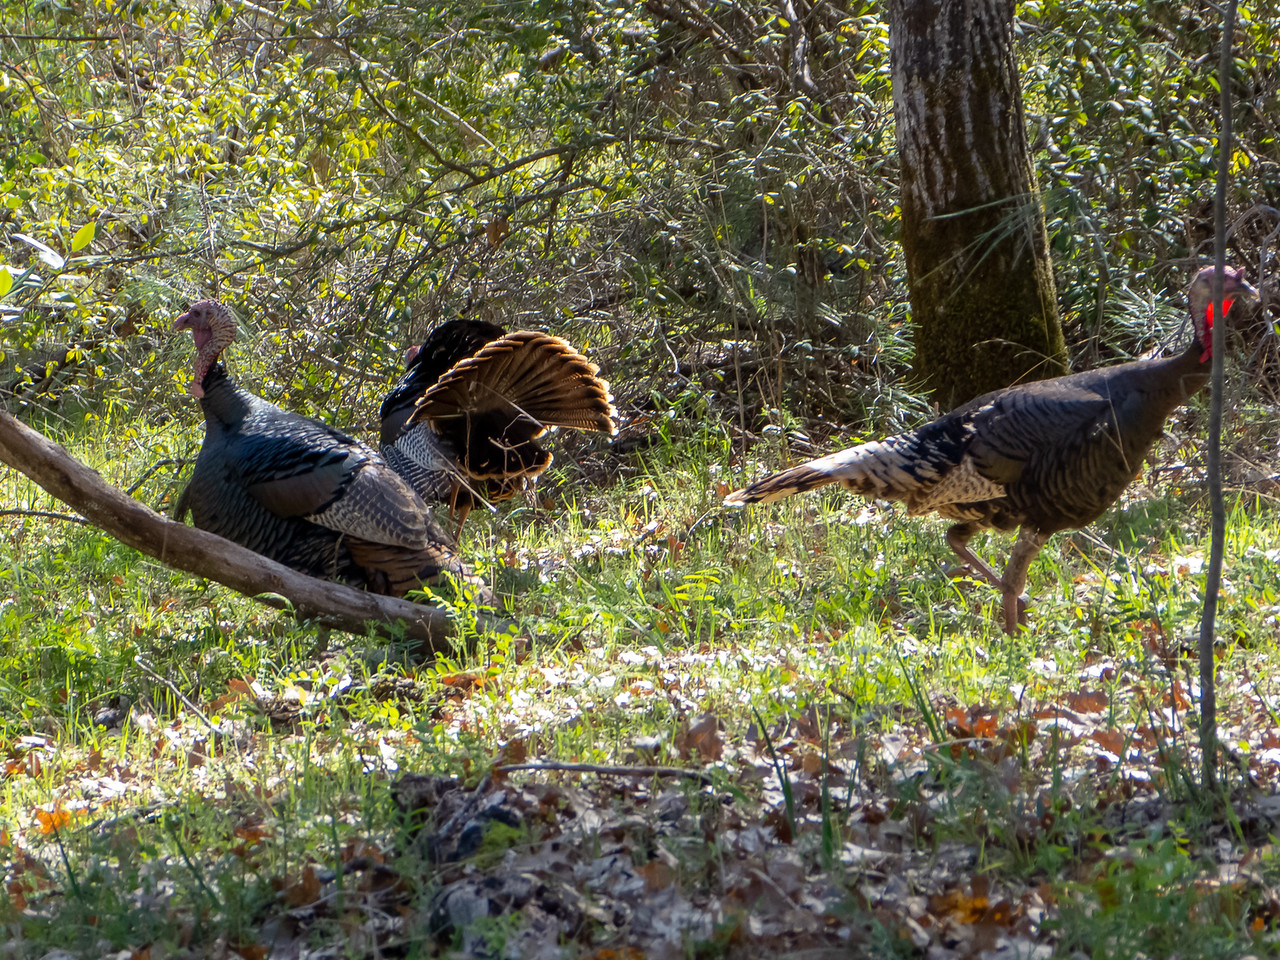 On the way down to Poverty Flat, I saw a group of turkeys: one displaying male and several indifferent females.